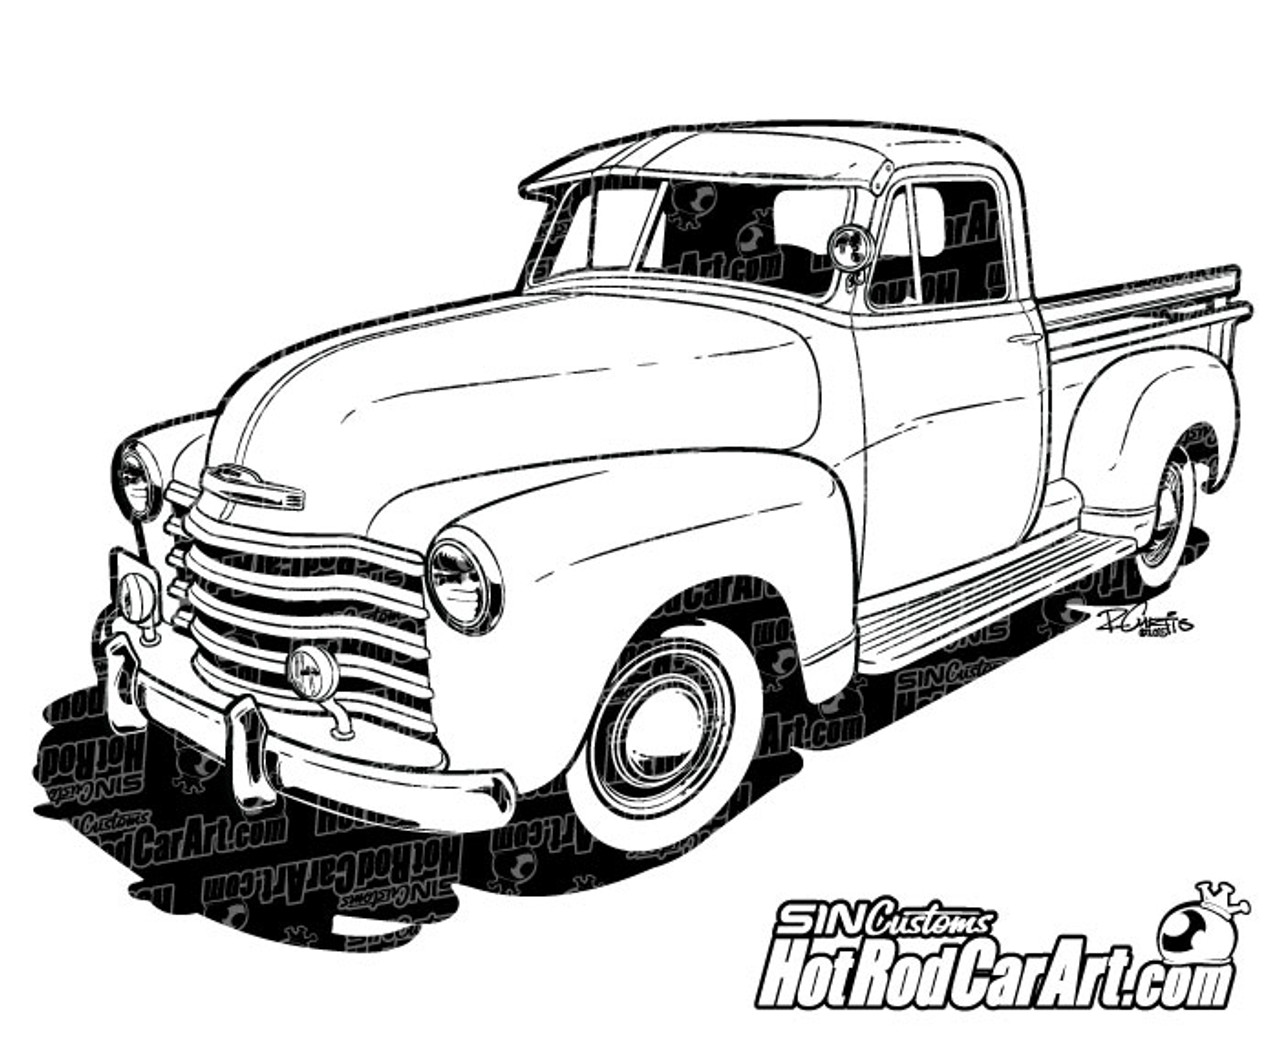 hight resolution of 1947 chevrolet pickup truck 2015 ryan curtis hotrodcarart com